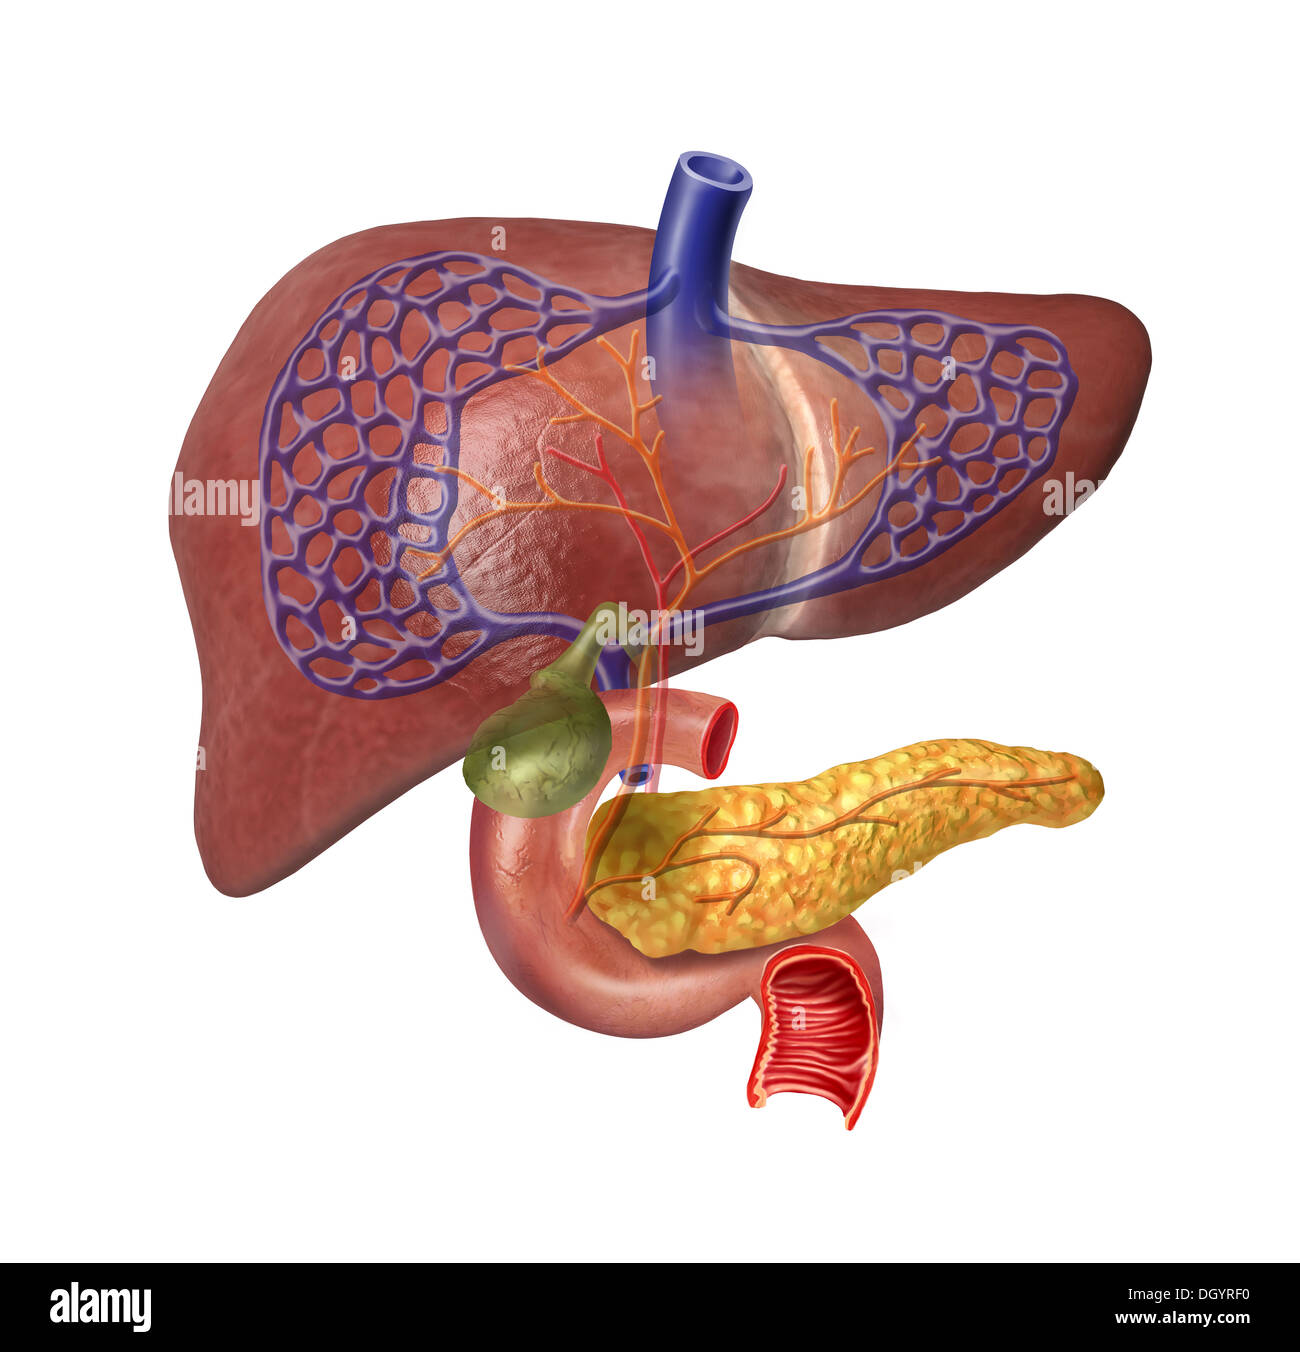 Human Liver system cutaway, with Pancreas, duodenum, Gallbladder ...